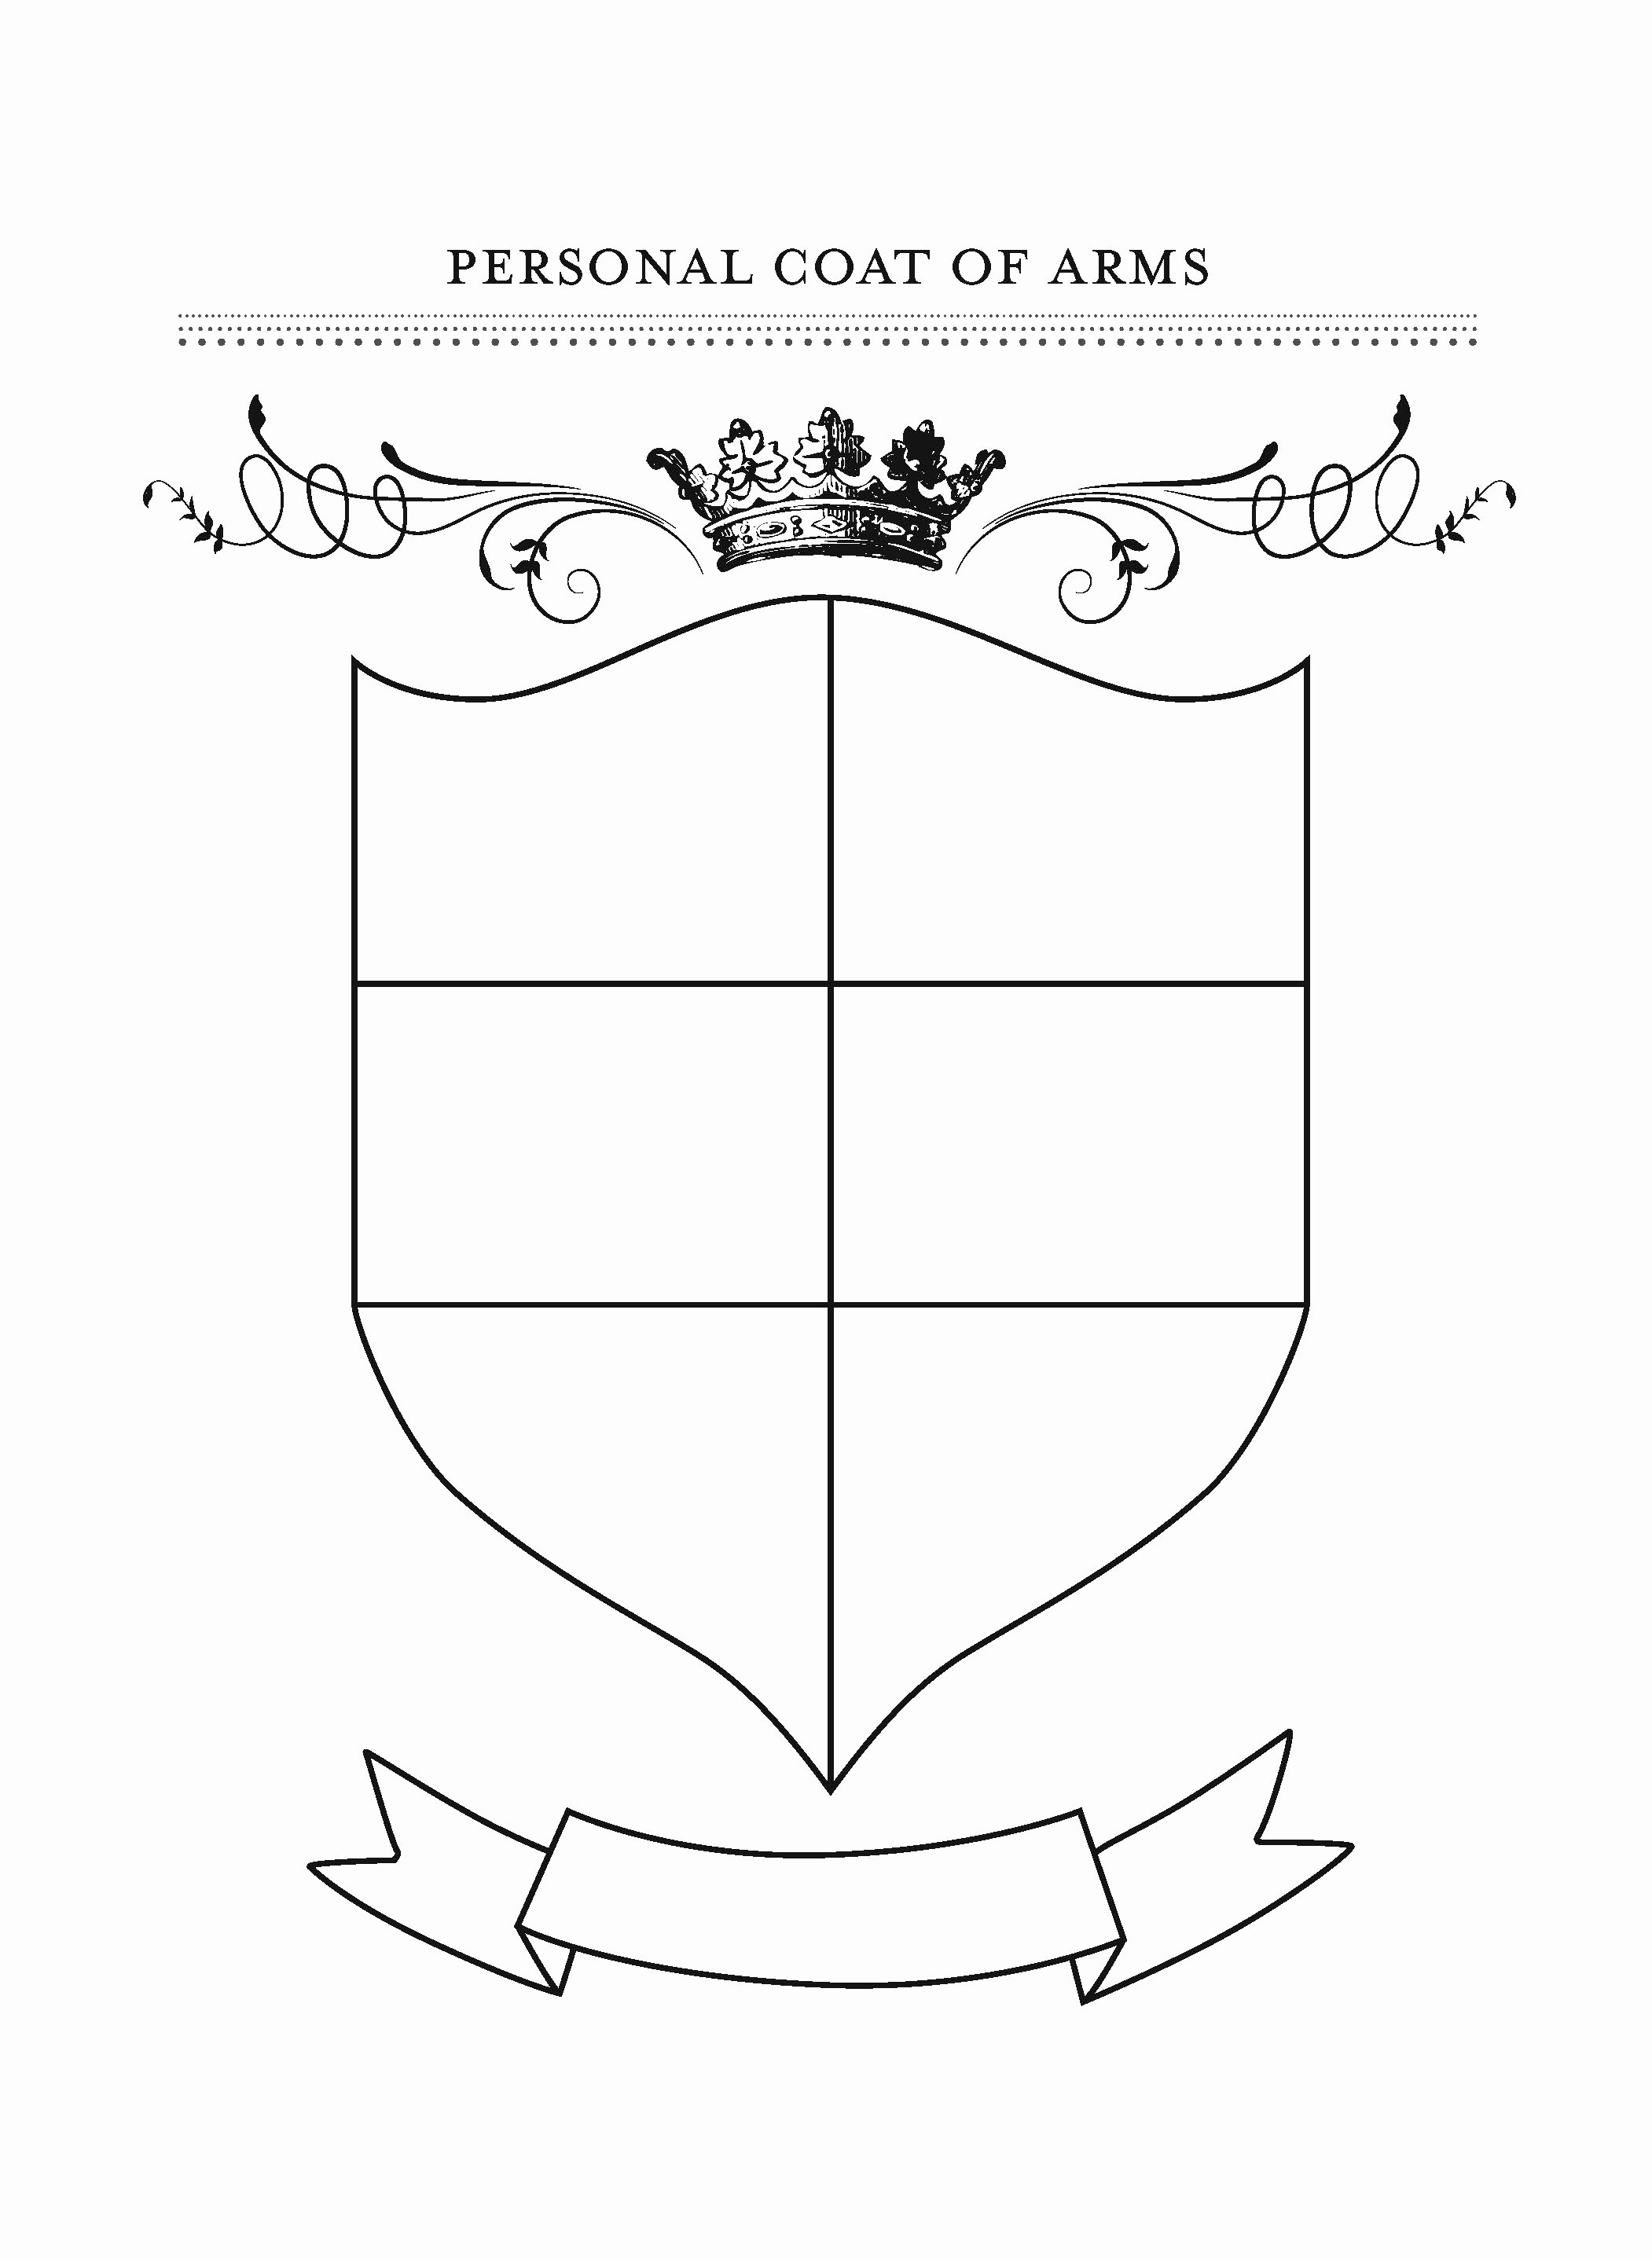 Personal Coat Of Arms Template New Honor Your Family with Fun Gratitude Crafts Slow Family